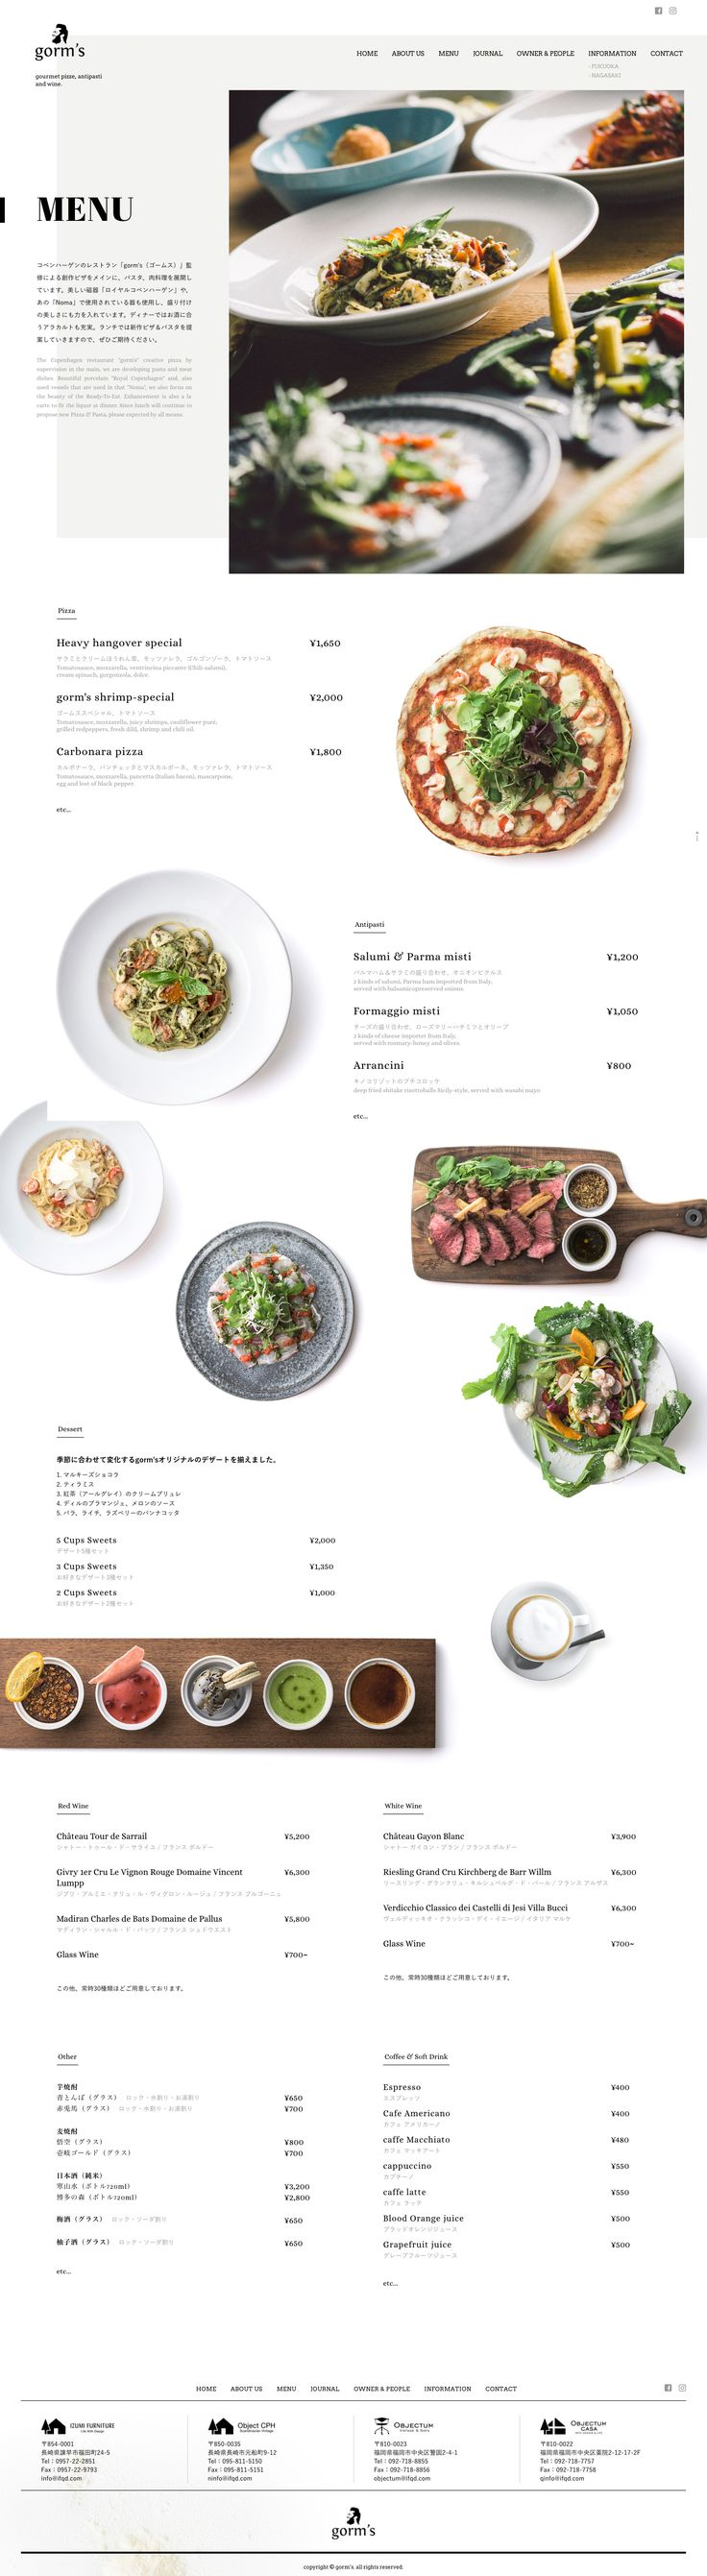 Overlapping texts, backgrounds and images. Going outside the grid. Menu restaurant website design.